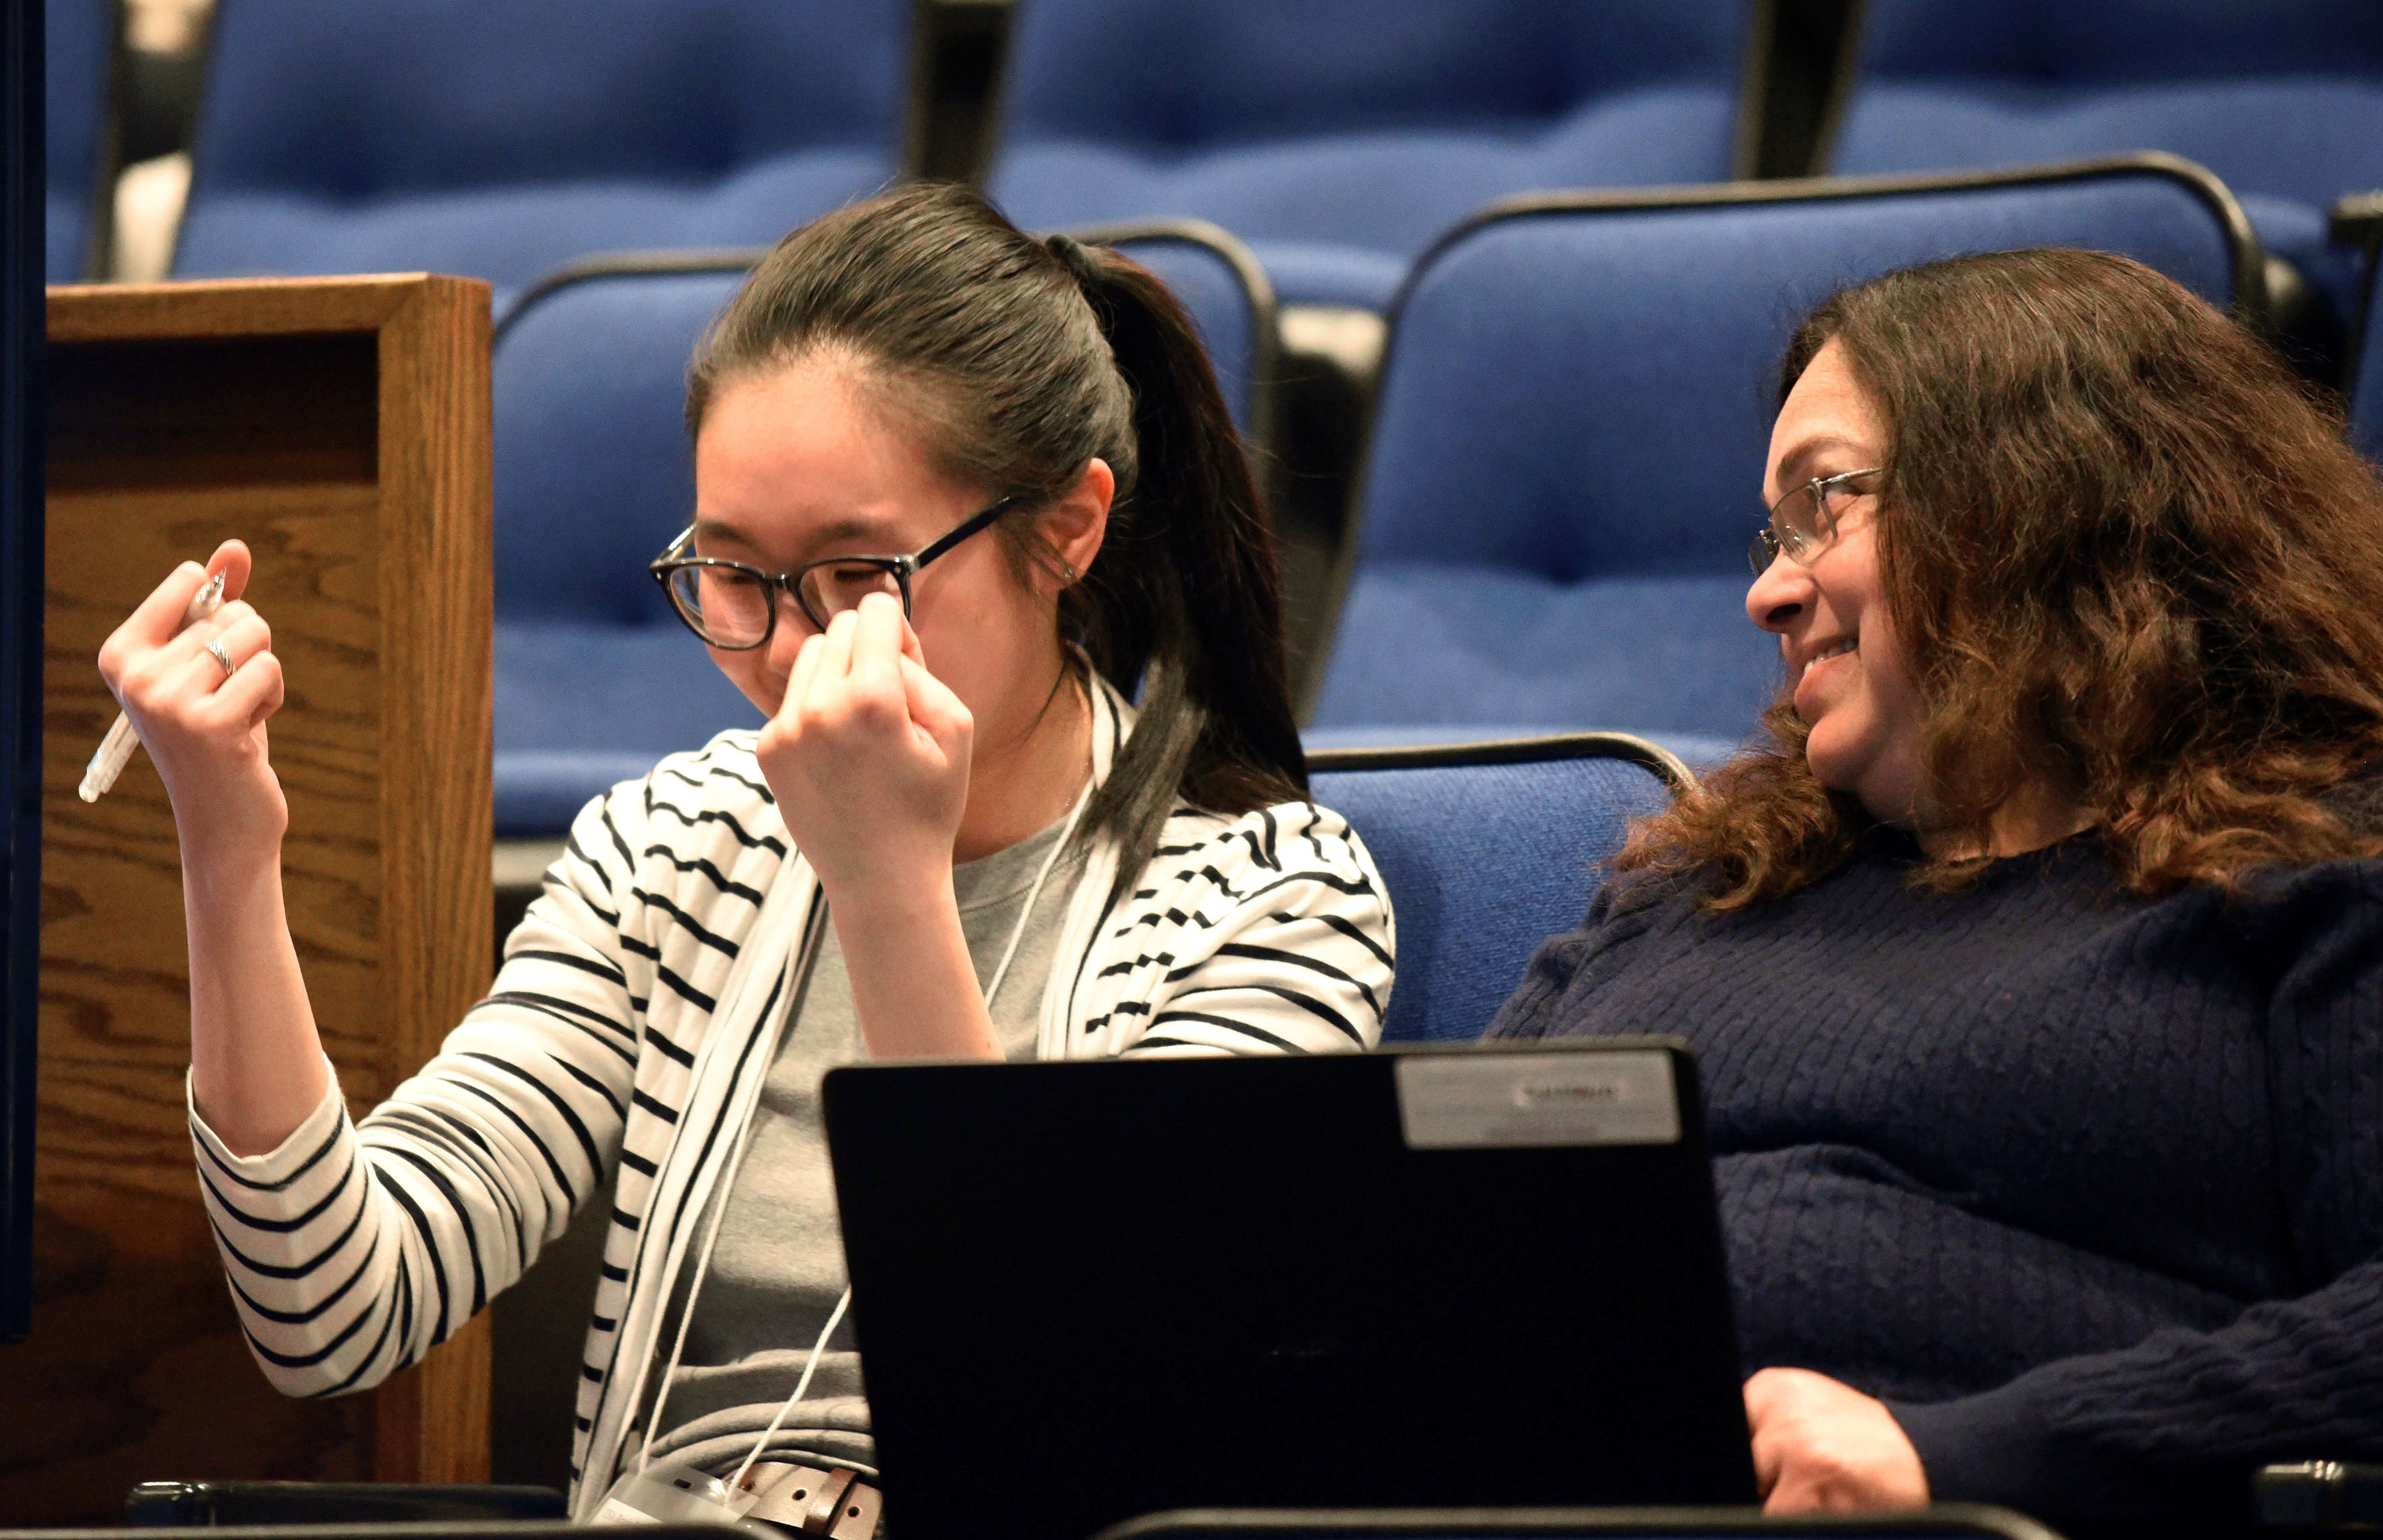 Kelly Chan, who wears a striped sweater and has glasses and her long hair in a ponytail, clenches both fists in victory as she celebrates a correct answer at the 2019 USA National Brain Bee, held April 12-14 at Penn State College of Medicine. Her proctor Dr. Vinita Acharya, associate professor of neurology at Penn State College of Medicine, looks over at her and smiles. The two are seated in auditorium seats. Archarya has long curly hair and is wearing a sweater and glasses and holds her laptop on her lap.